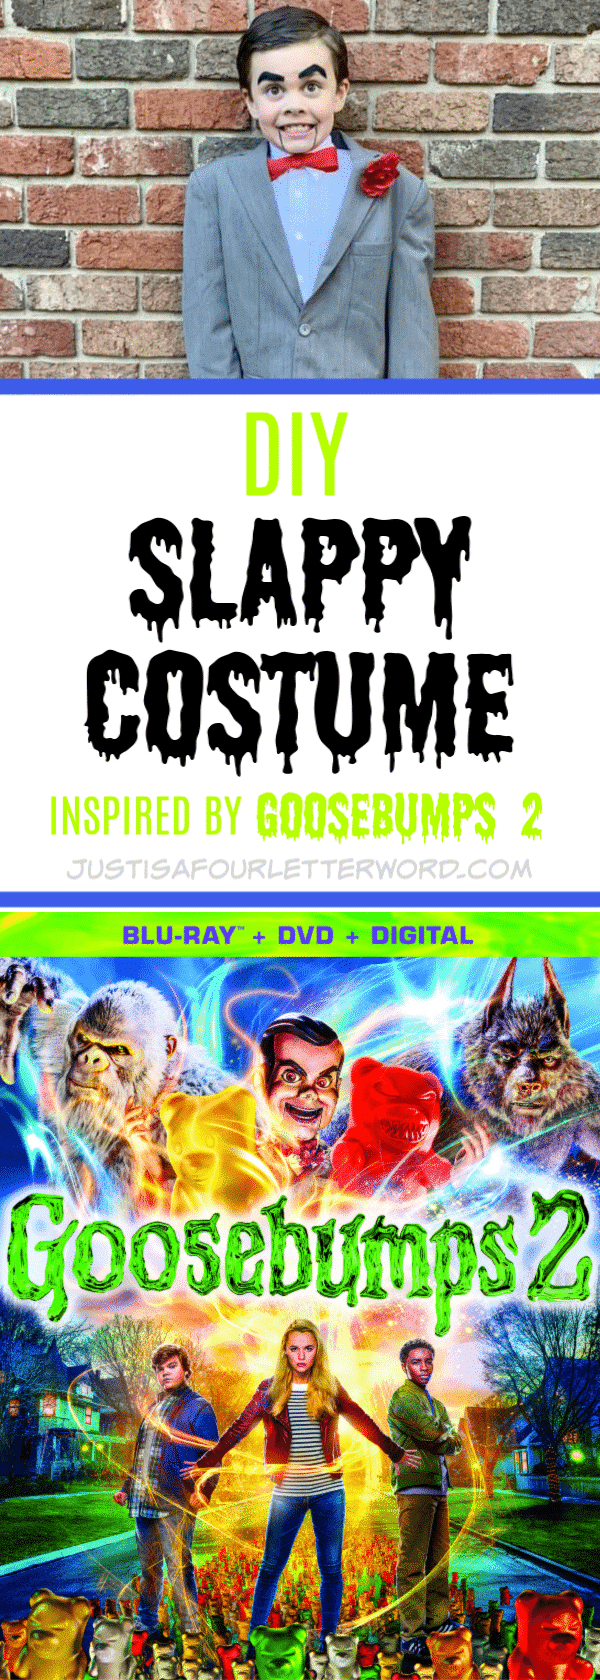 Make this Goosebumps DIY Slappy costume using thrifted items and a little creativity. Perfect for Halloween or playtime inspired by the super fun Goosebumps 2 movie.